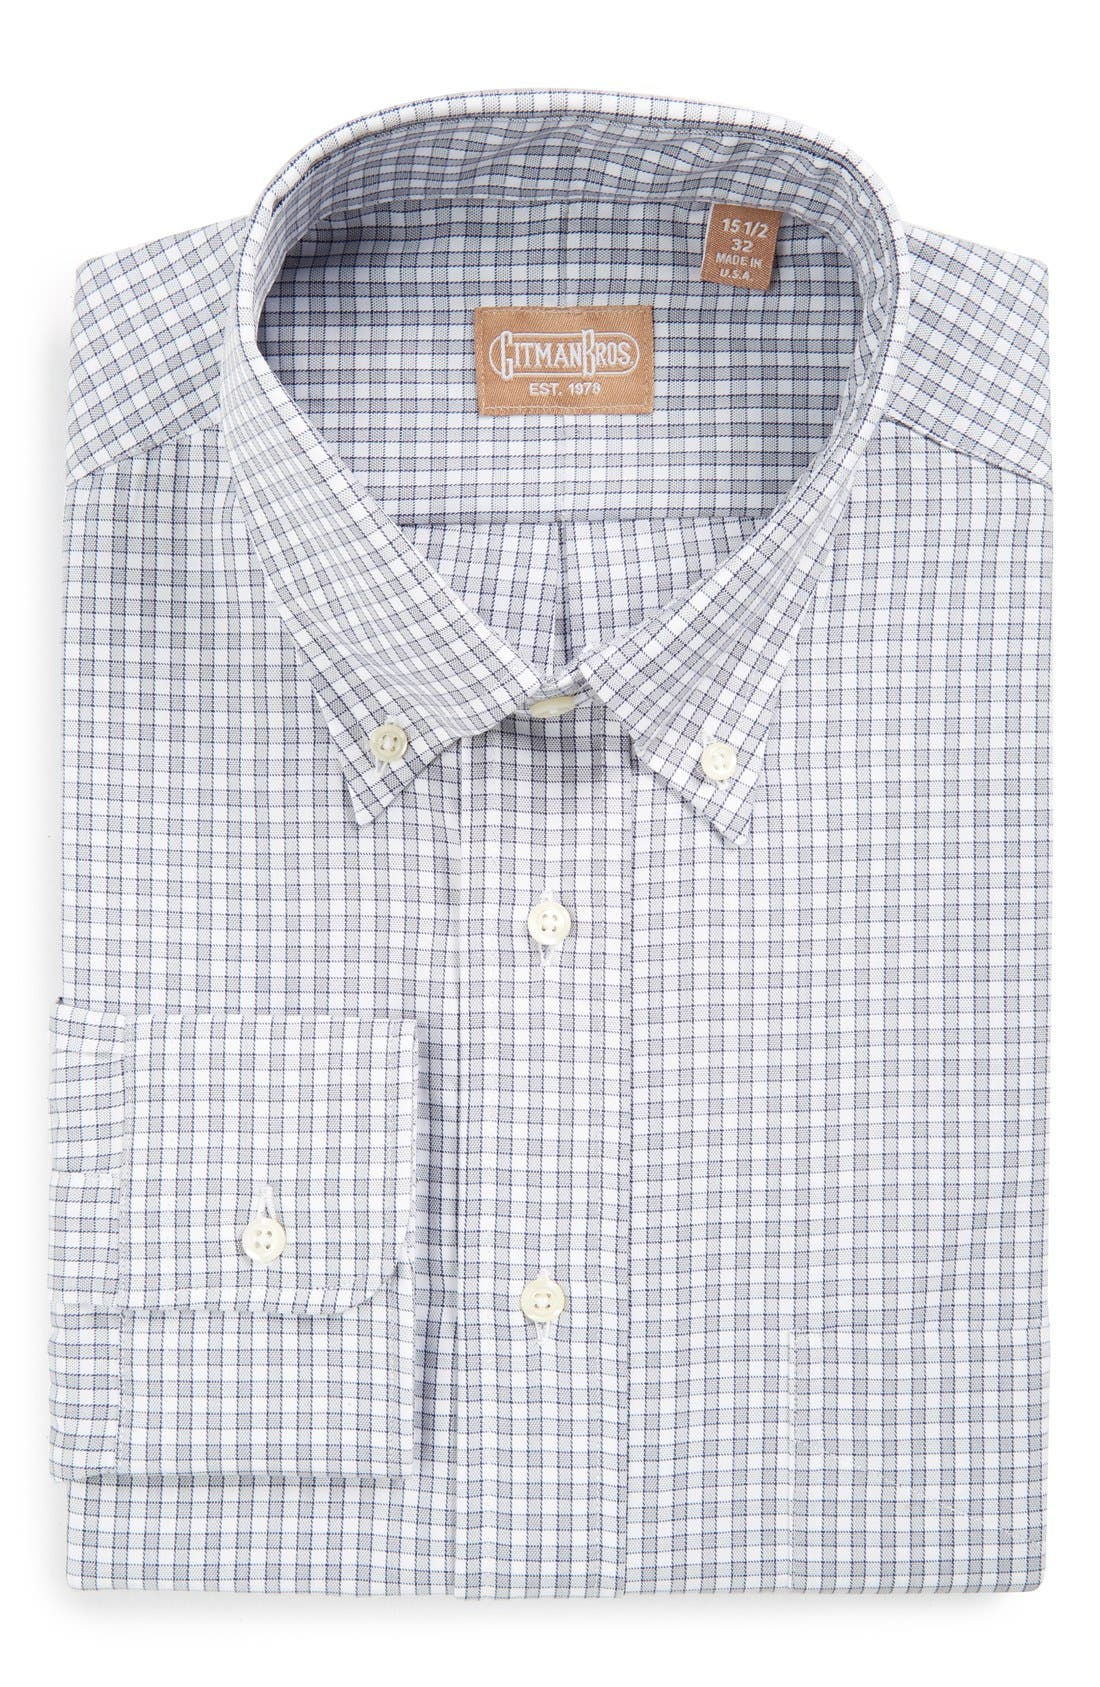 Regular Fit Gingham Check Dress Shirt,                             Main thumbnail 1, color,                             Grey